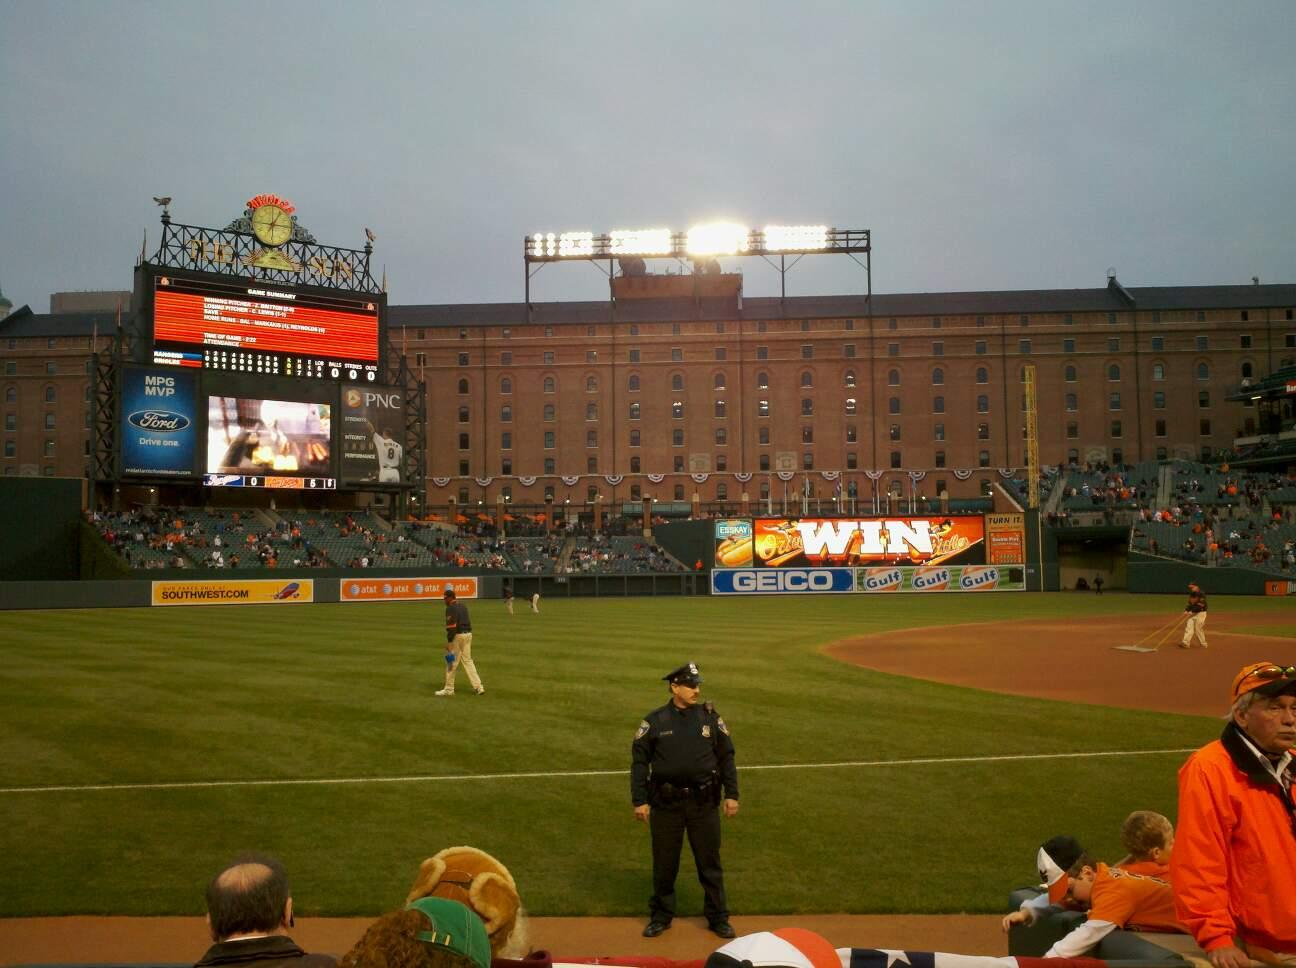 Oriole Park at Camden Yards Section 60 Row 5 Seat 5